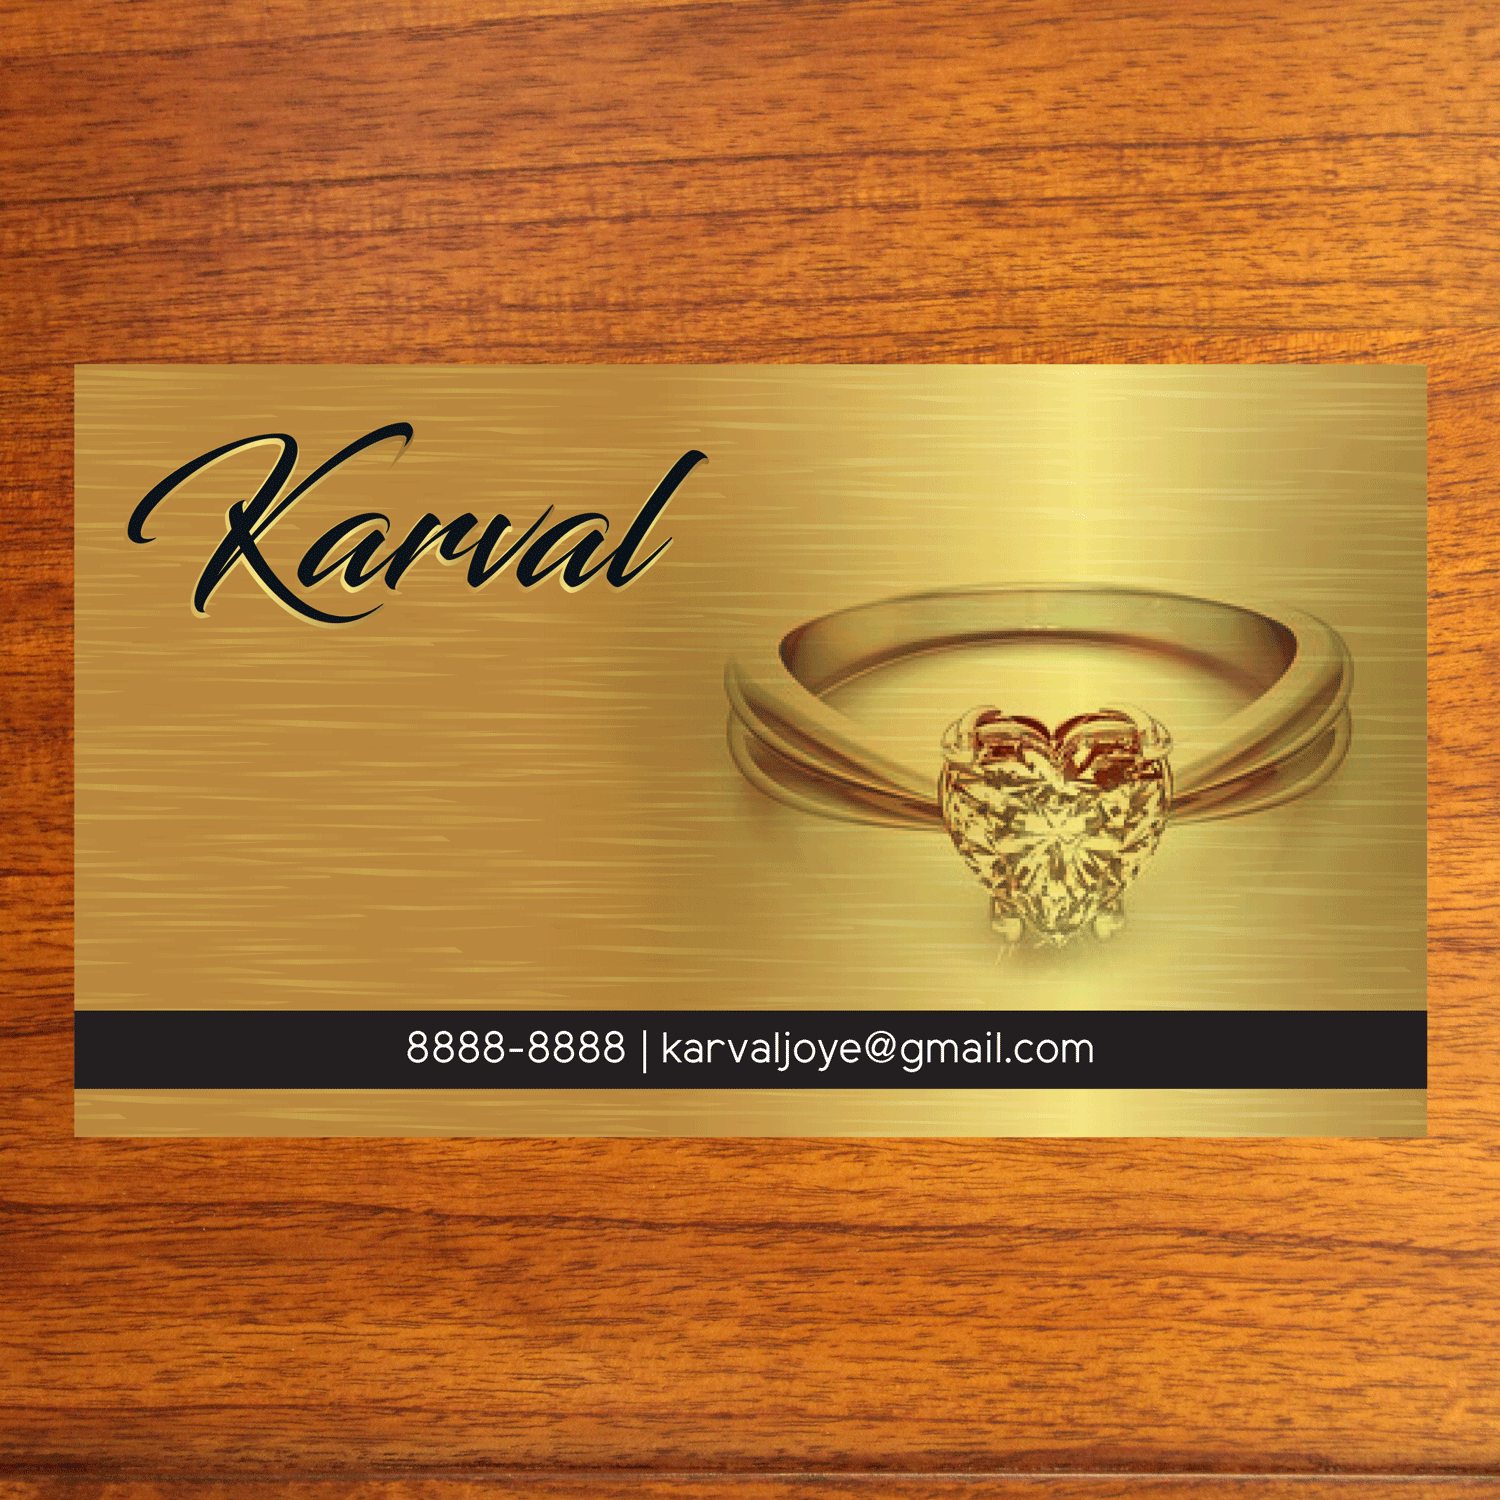 Serious, Conservative, Jewelry Store Business Card Design for ...